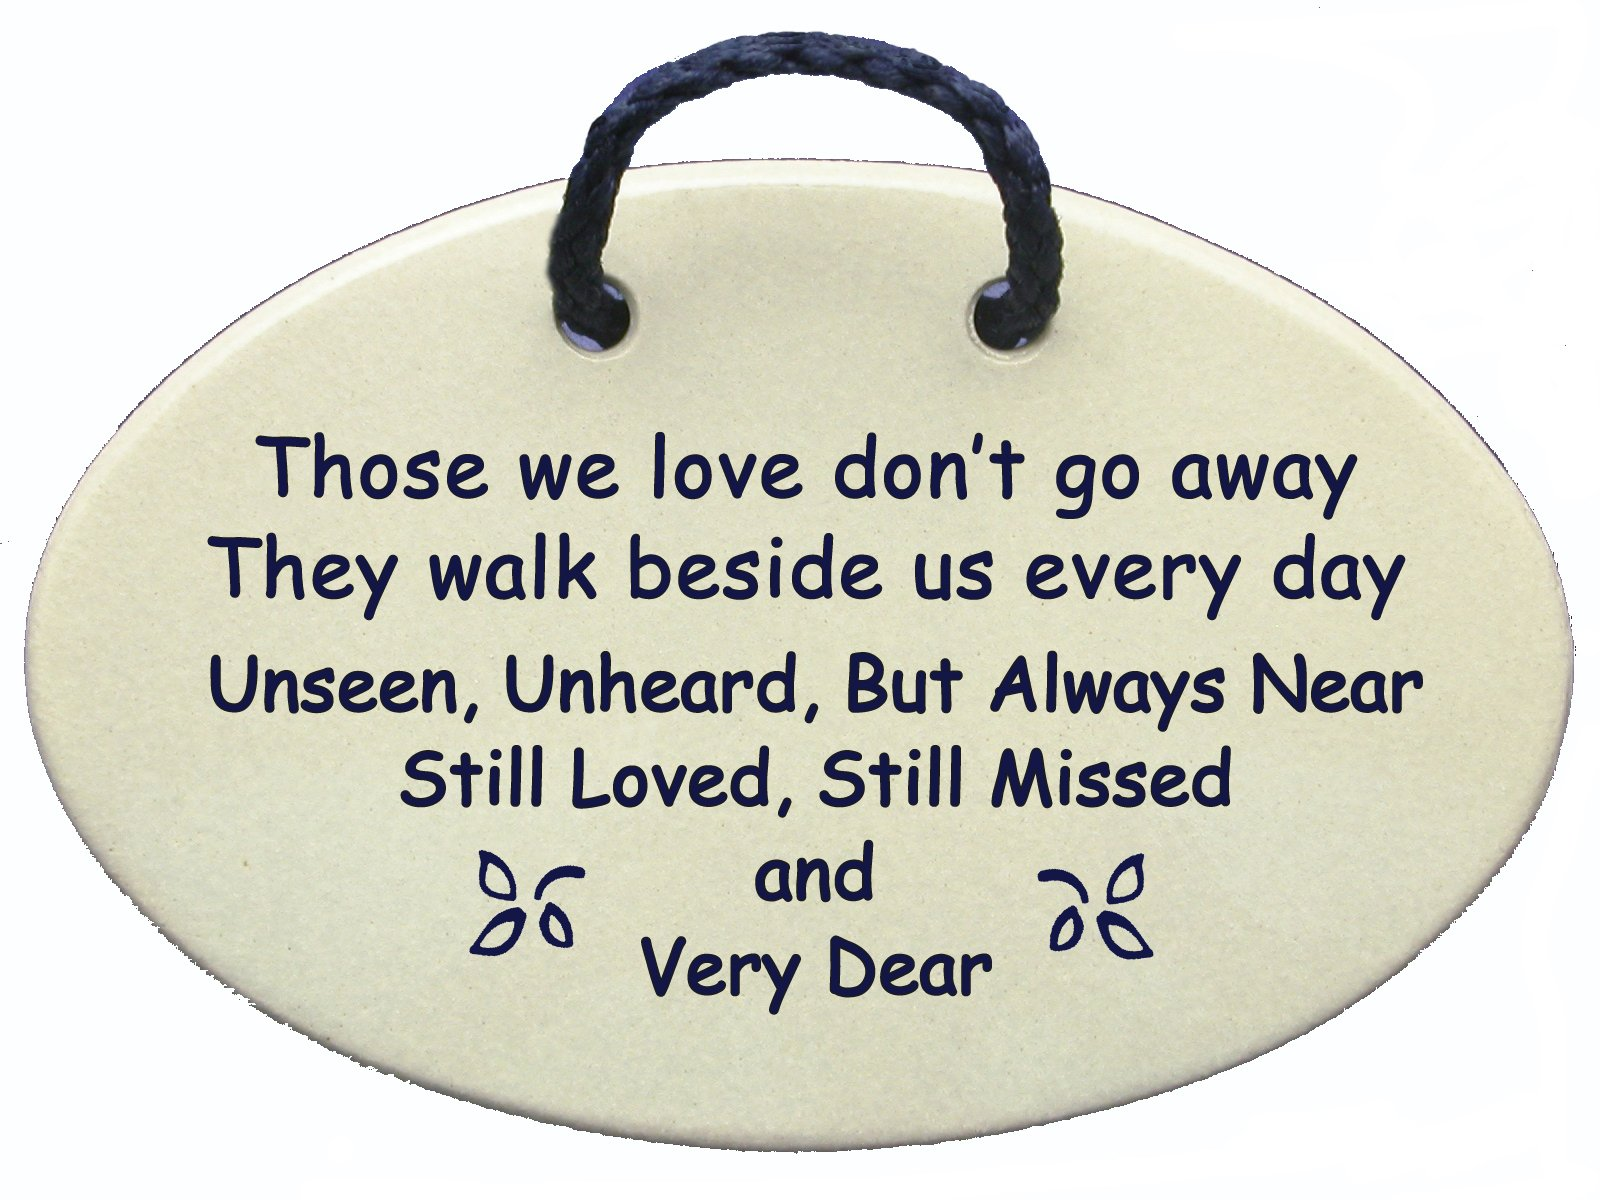 Those we love don't go away They walk beside us everyday but always near still loved, still missed and very dear. Reduced price for this wall plaque with saying offsets shipping cost. Made in USA